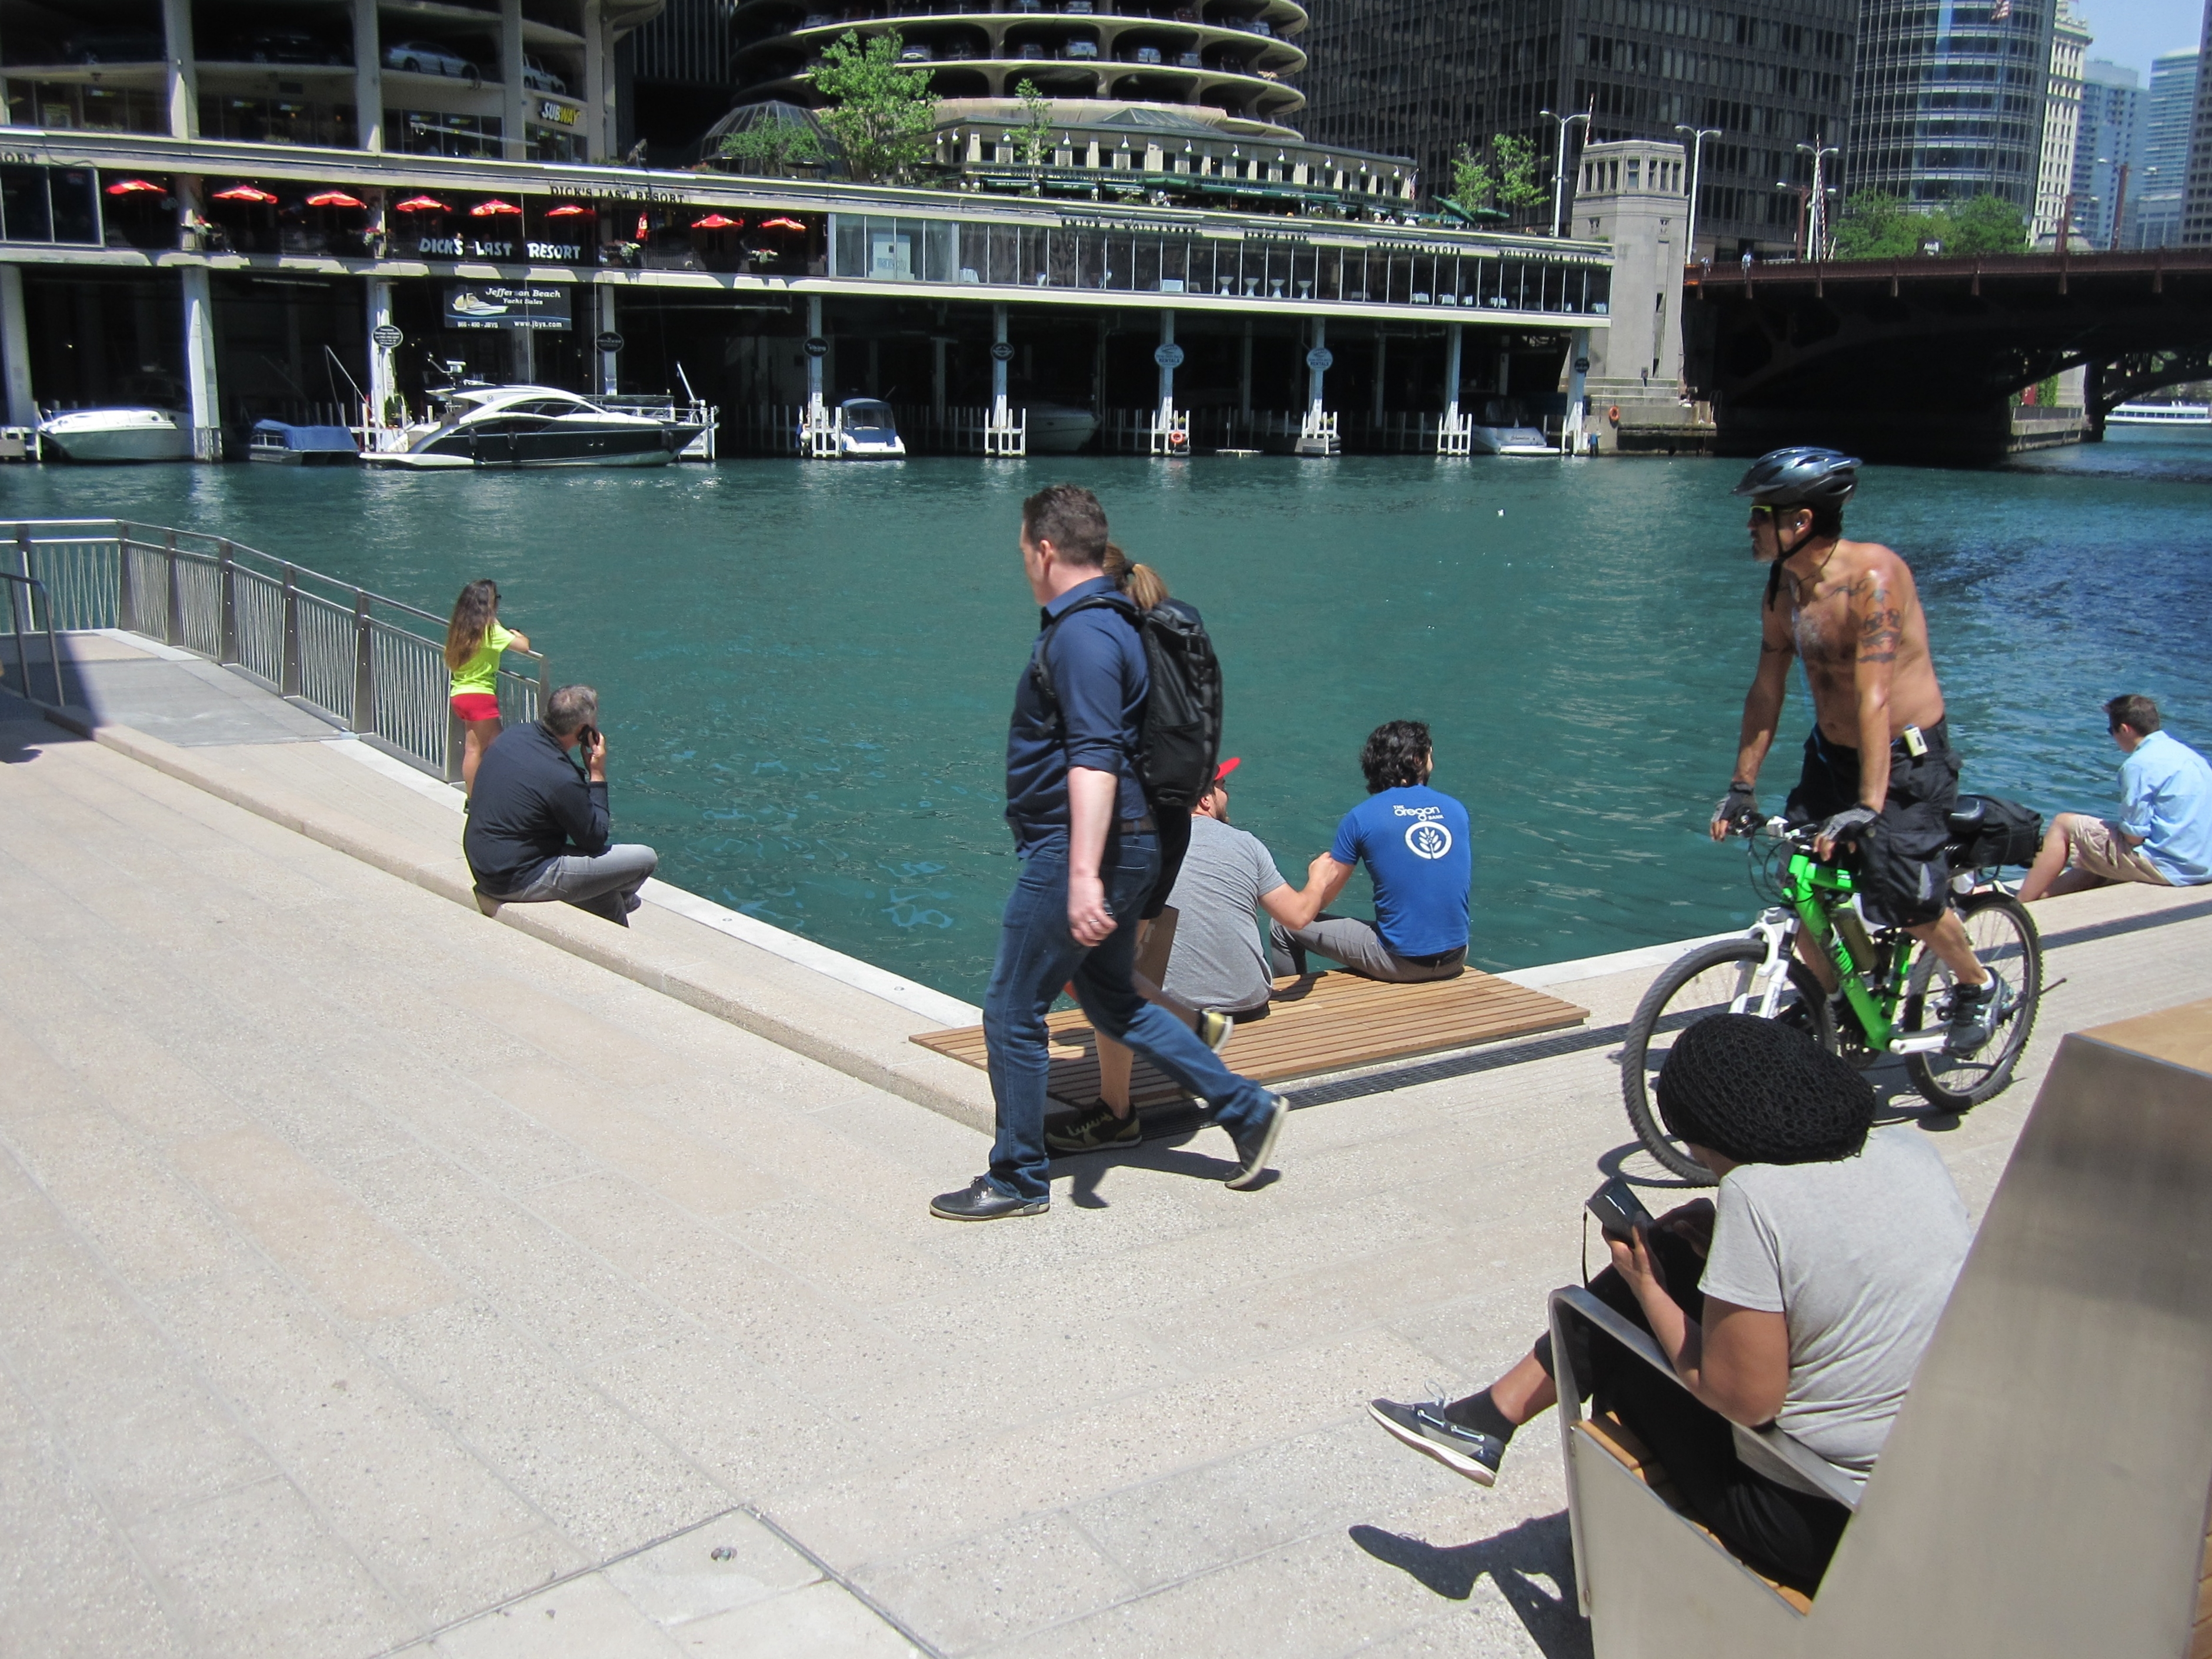 Tight turns and bottlenecks making cycling on the riverwalk a tricky endeavor. Photo: John Greenfield